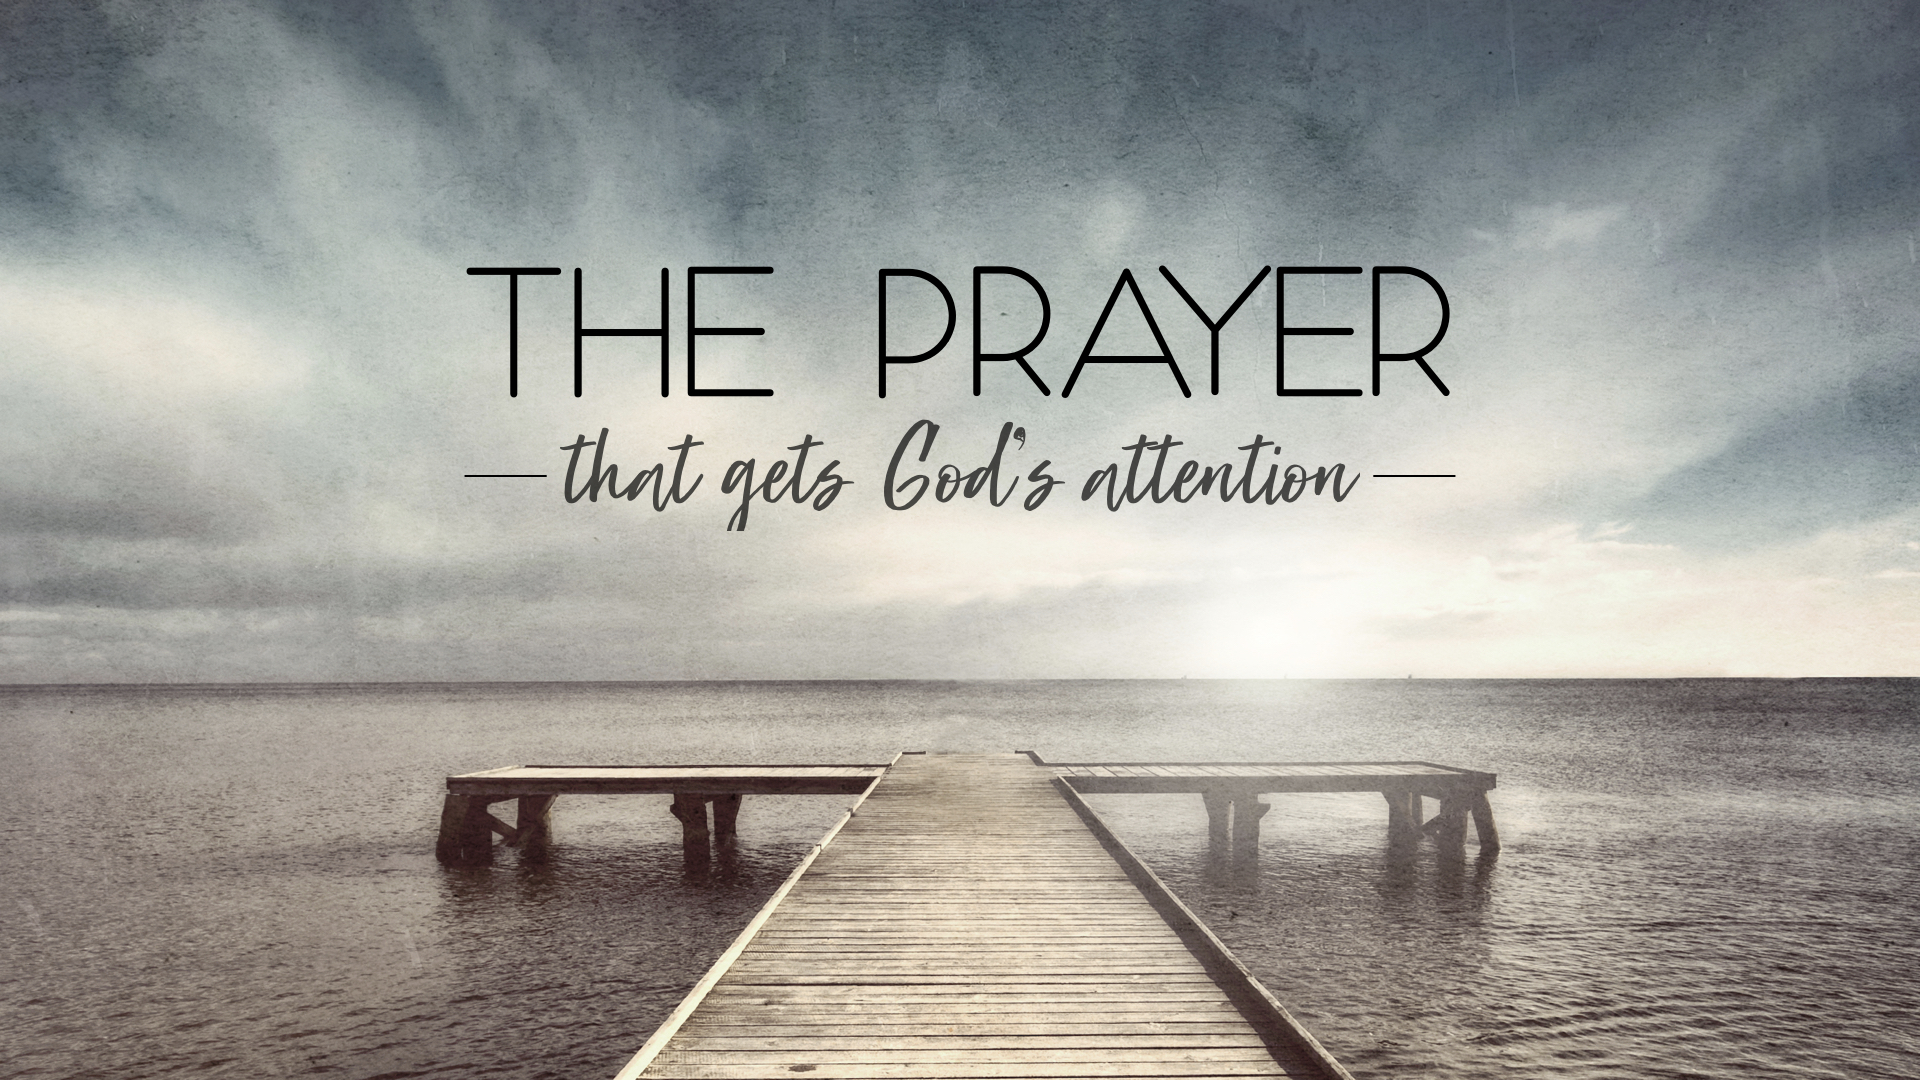 THE PRAYER THAT GETS GOD'S ATTENTION - GRIMALDI MARTINEZ | 4.15.2018 | WATCH